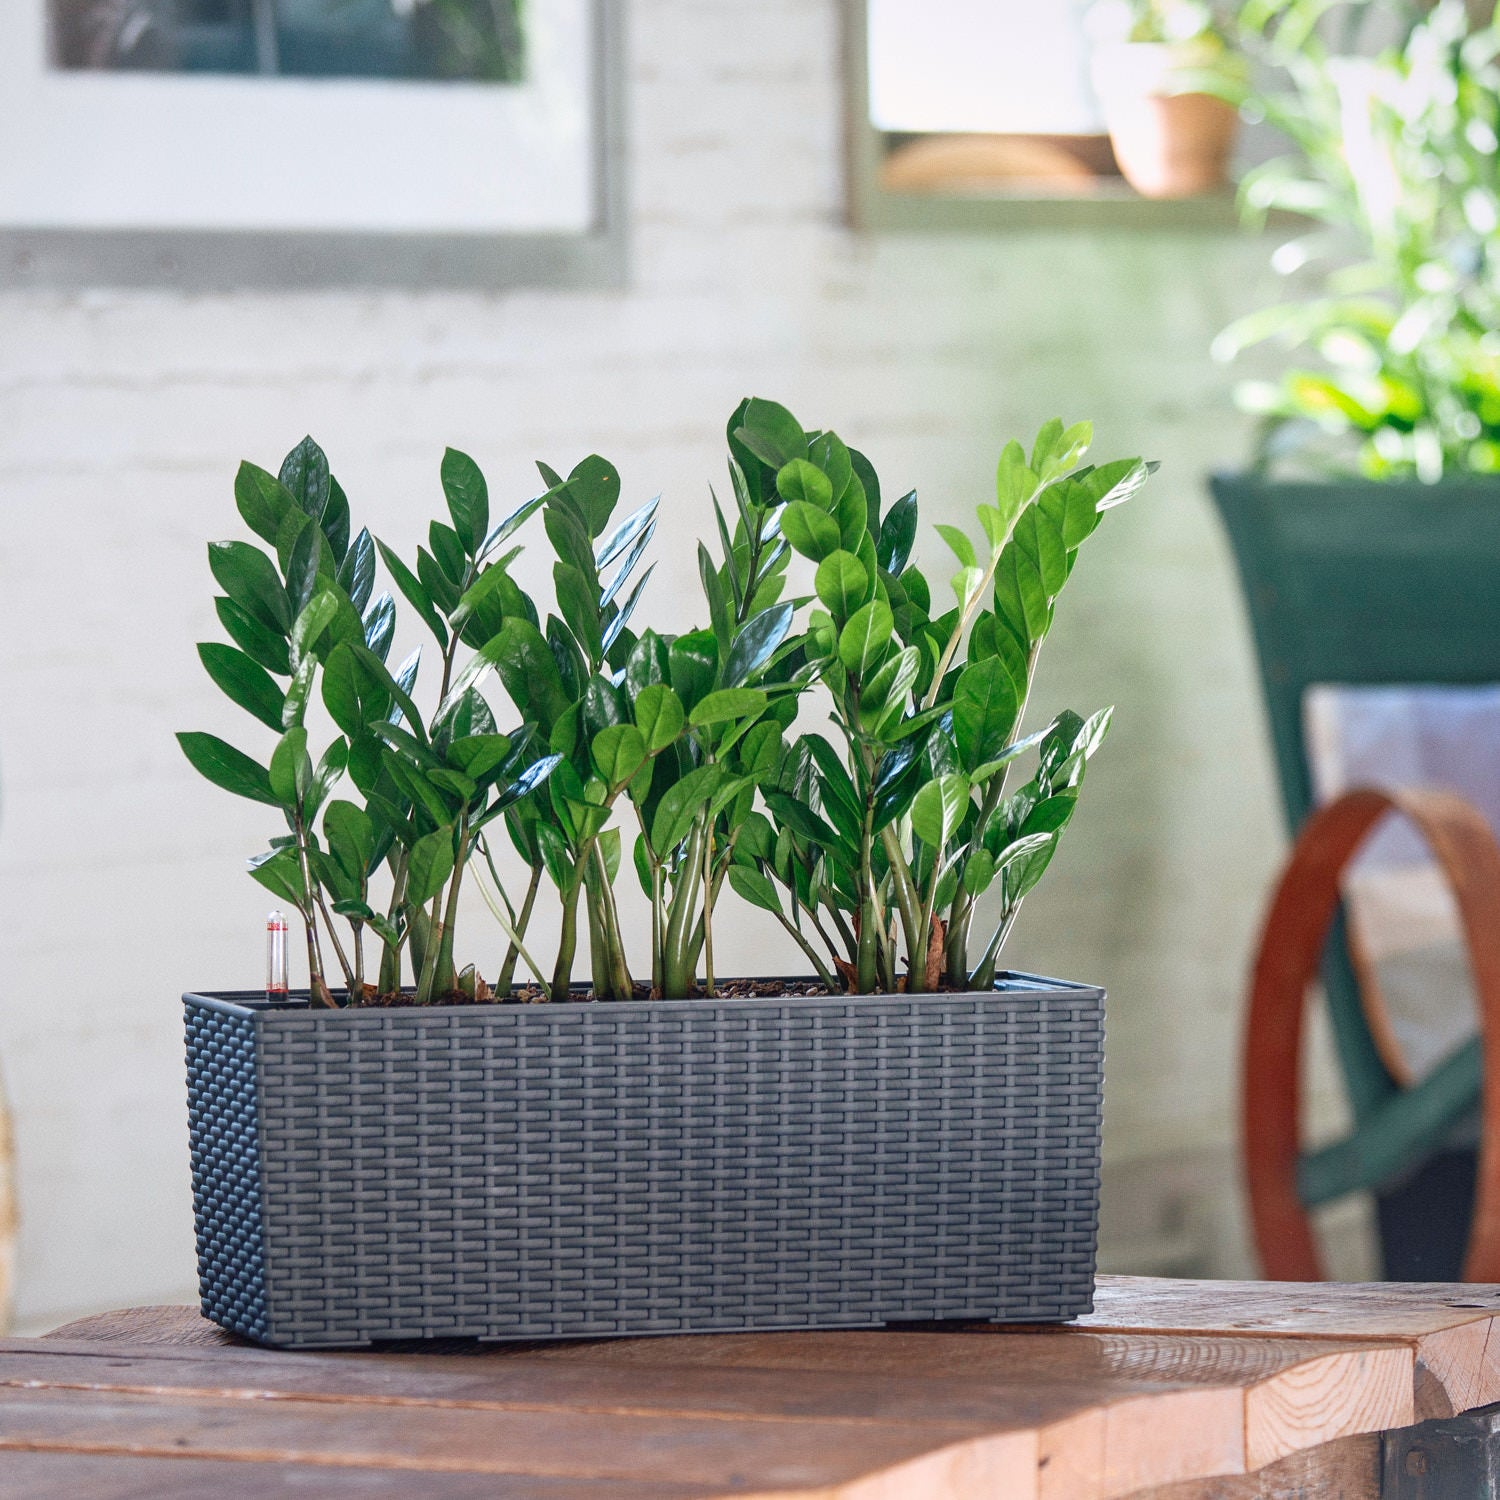 ZZ plant potted in Lechuza Balconera Cottage granite planter - My City Plants